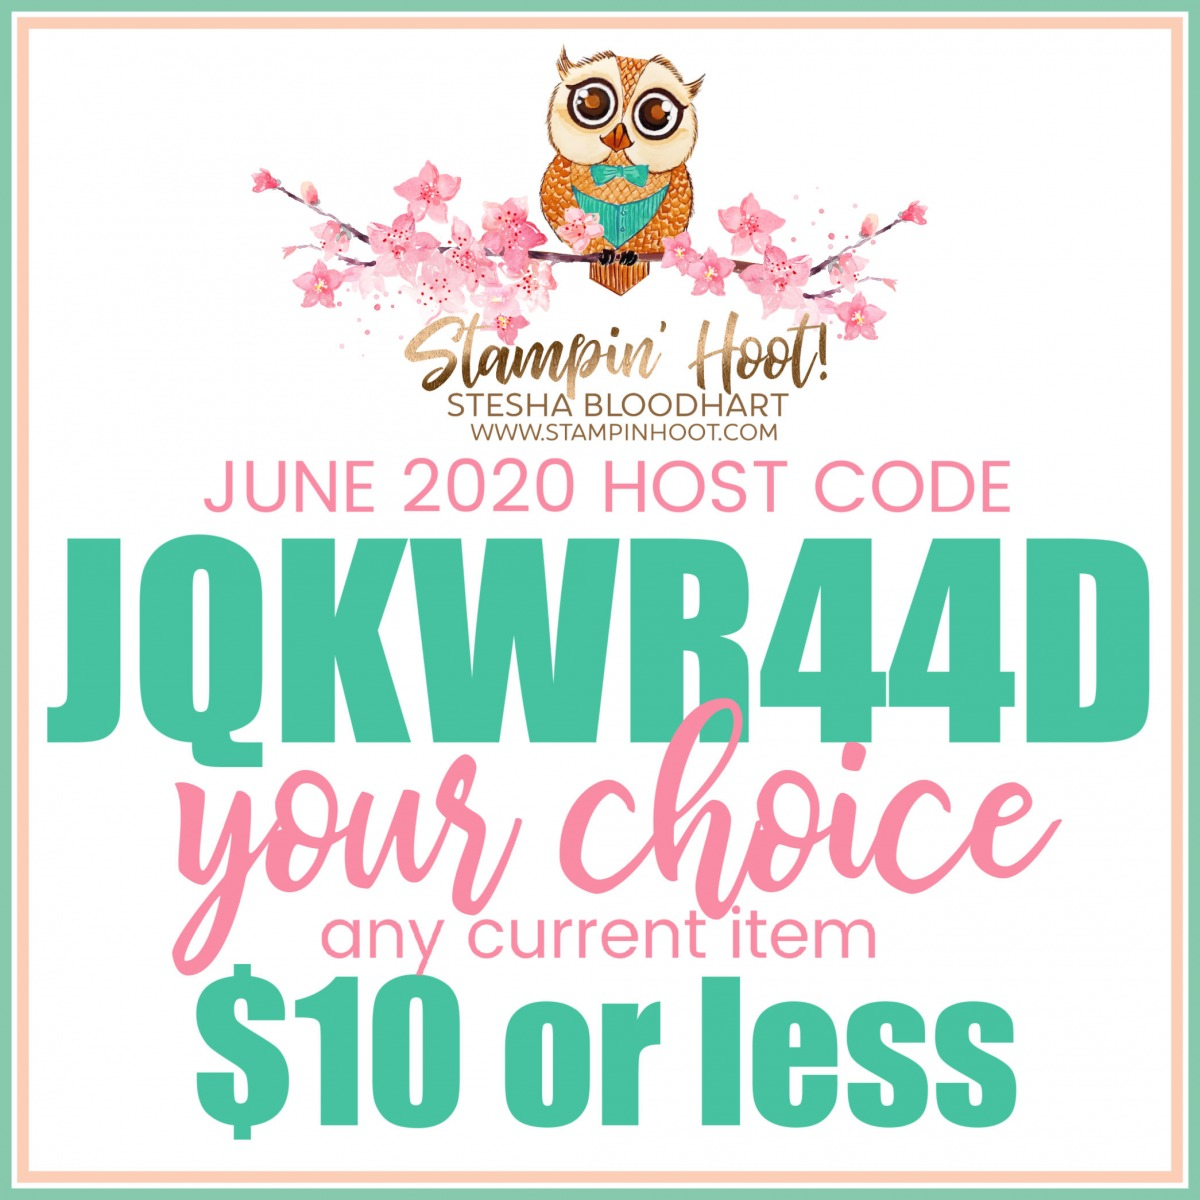 June Code for FREE Hoot Loot from Stesha Bloodhart, Stampin' Hoot!